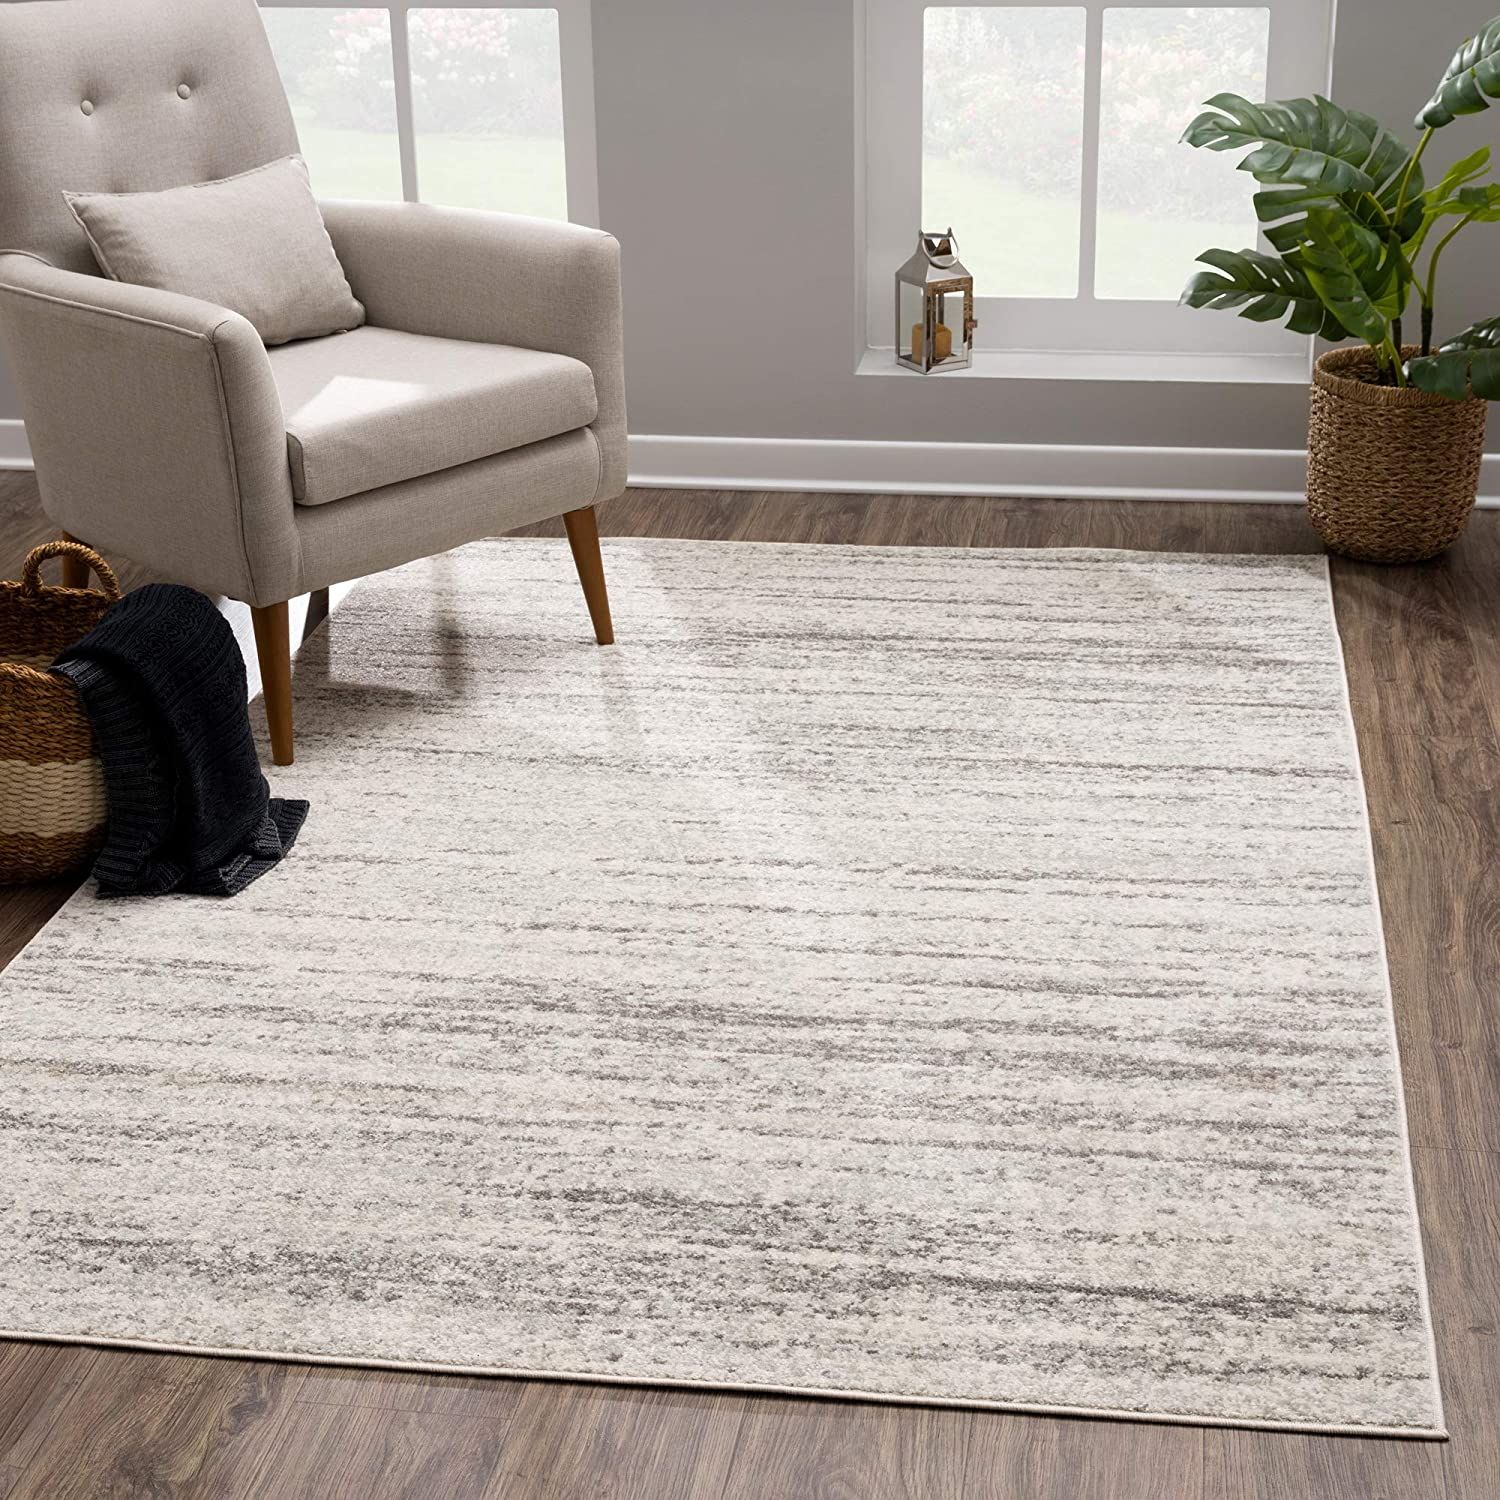 2021 Opening large release sale model Modern Cream Gray Area Rug - 6x9 for Contemporary L Abstract